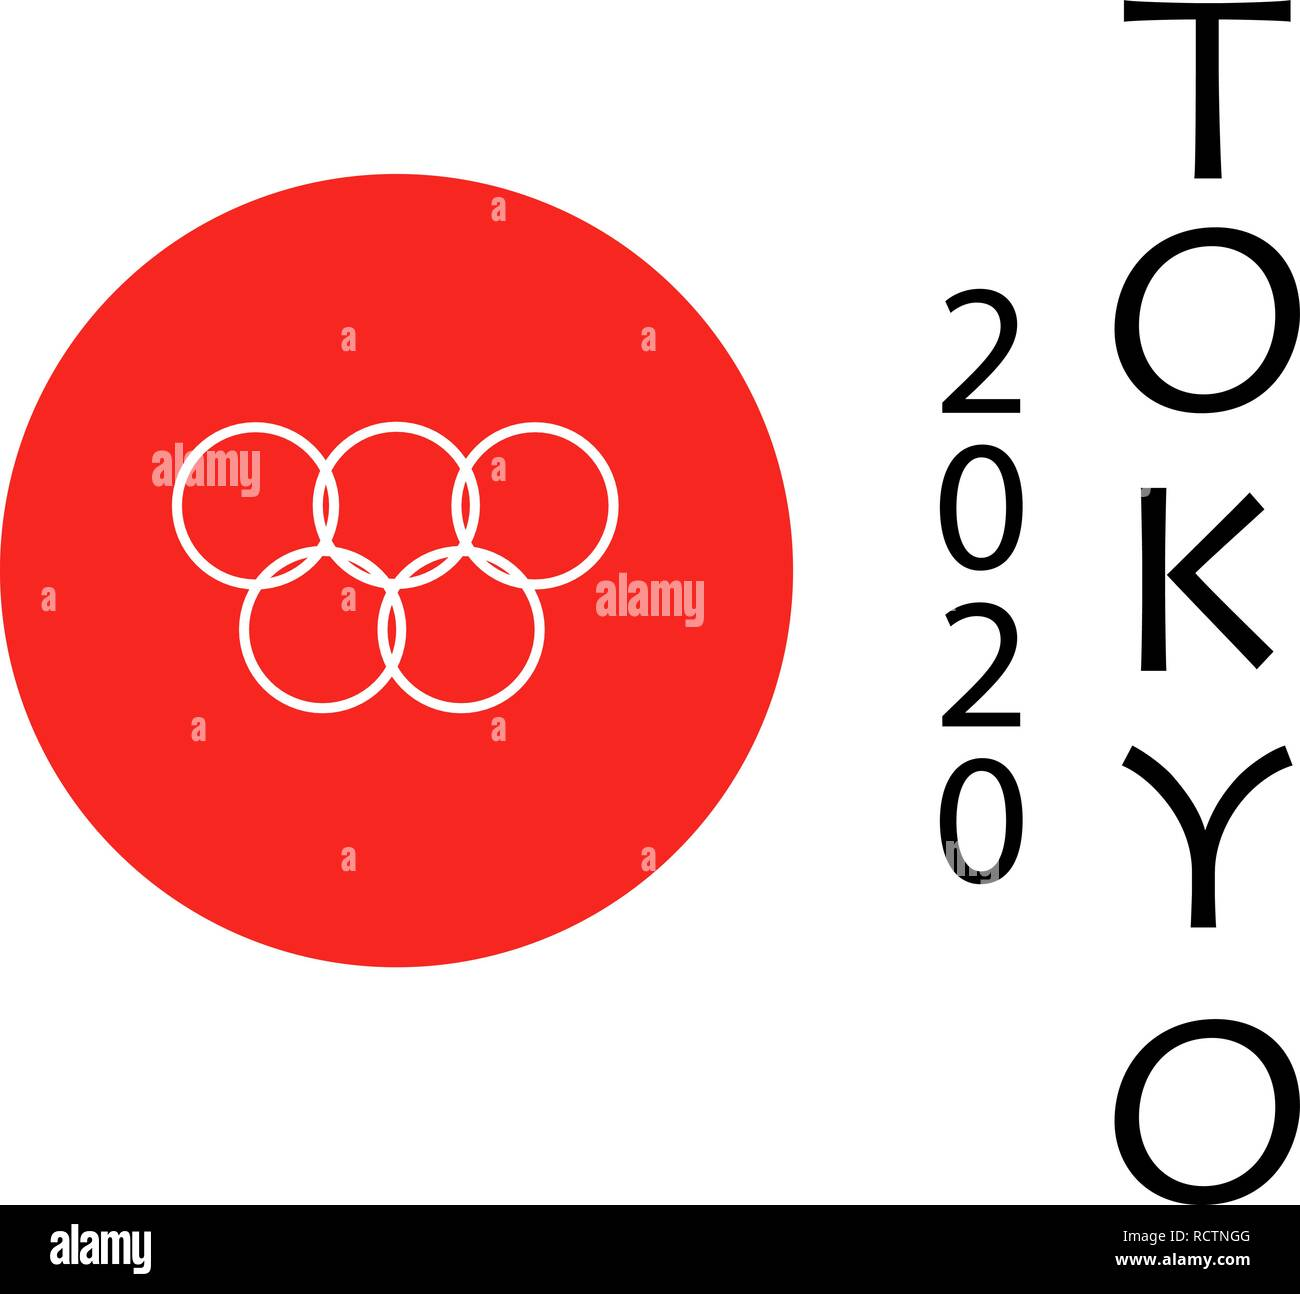 TOKYO JAPAN 2020 Olympic games in Tokyo. Olympic rings in flag and text. On white background. - Stock Vector